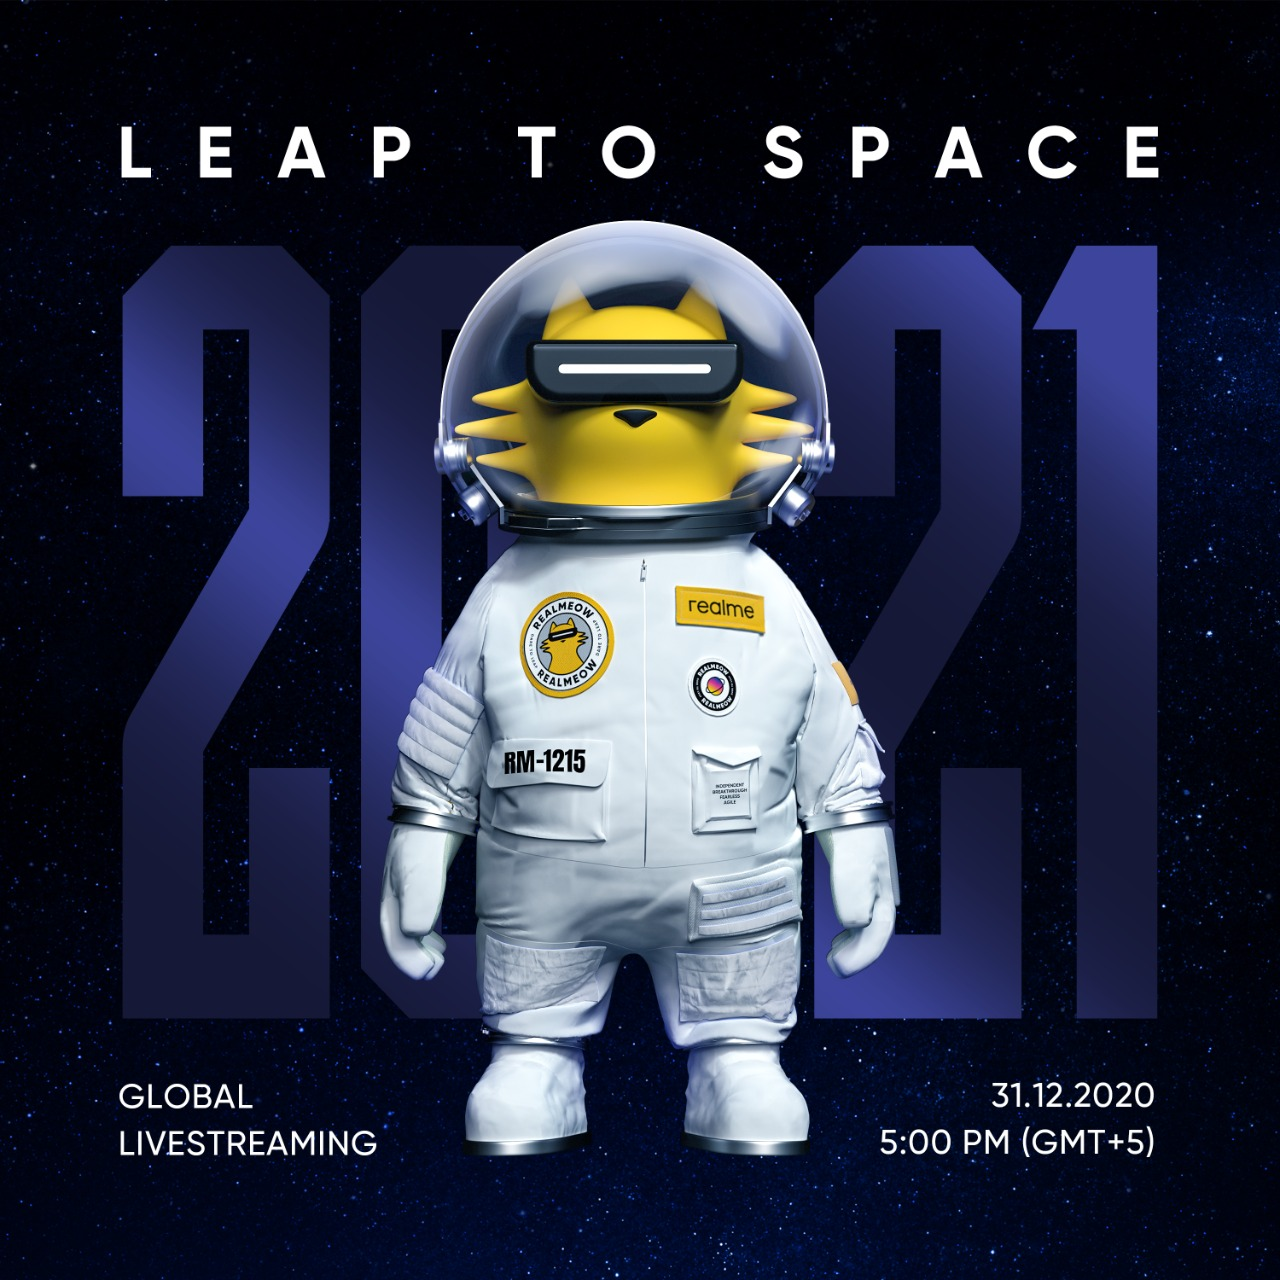 Leap to space this New Year's Eve with realmeow space adventure livestream. Hello 2021!